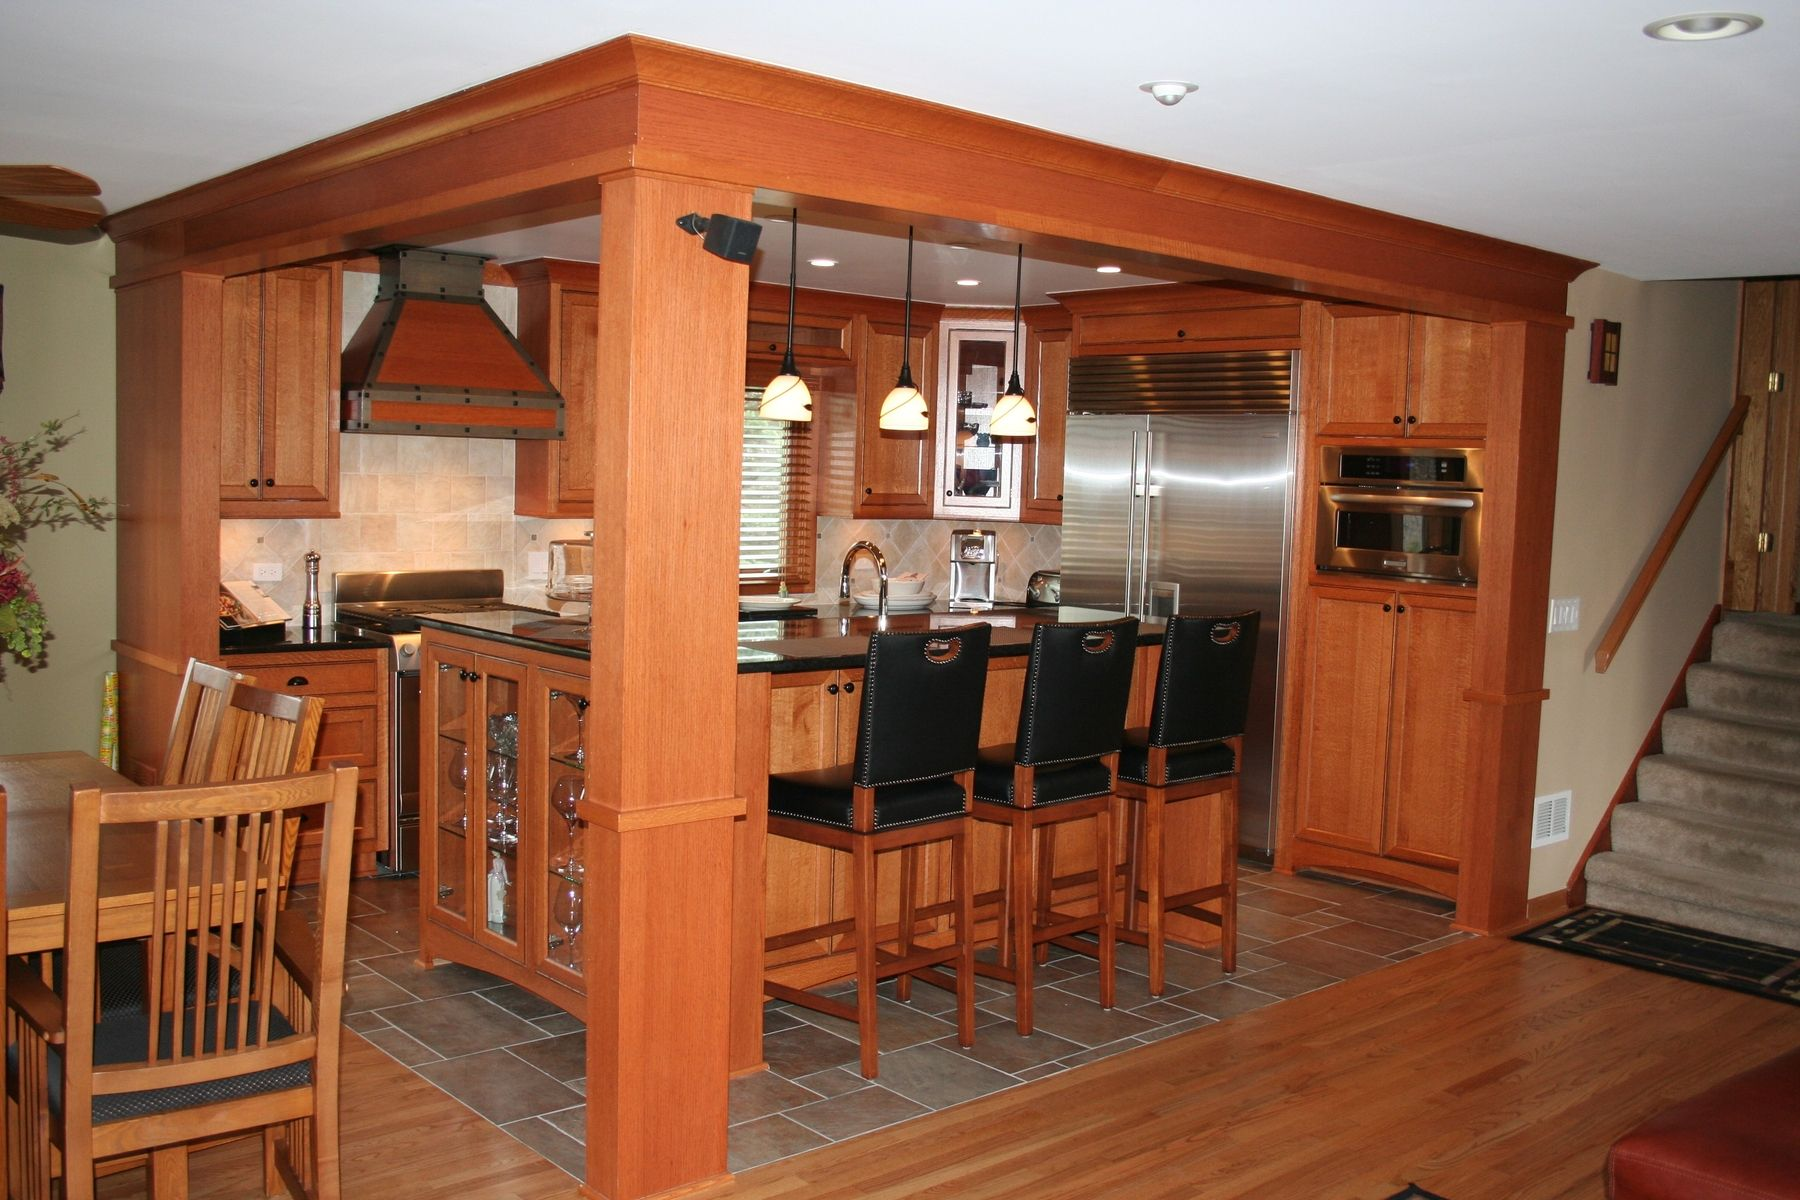 Handmade custom quarter sawn oak kitchen cabinets by jr 39 s custom cabinets - Custom made kitchen cabinets ...